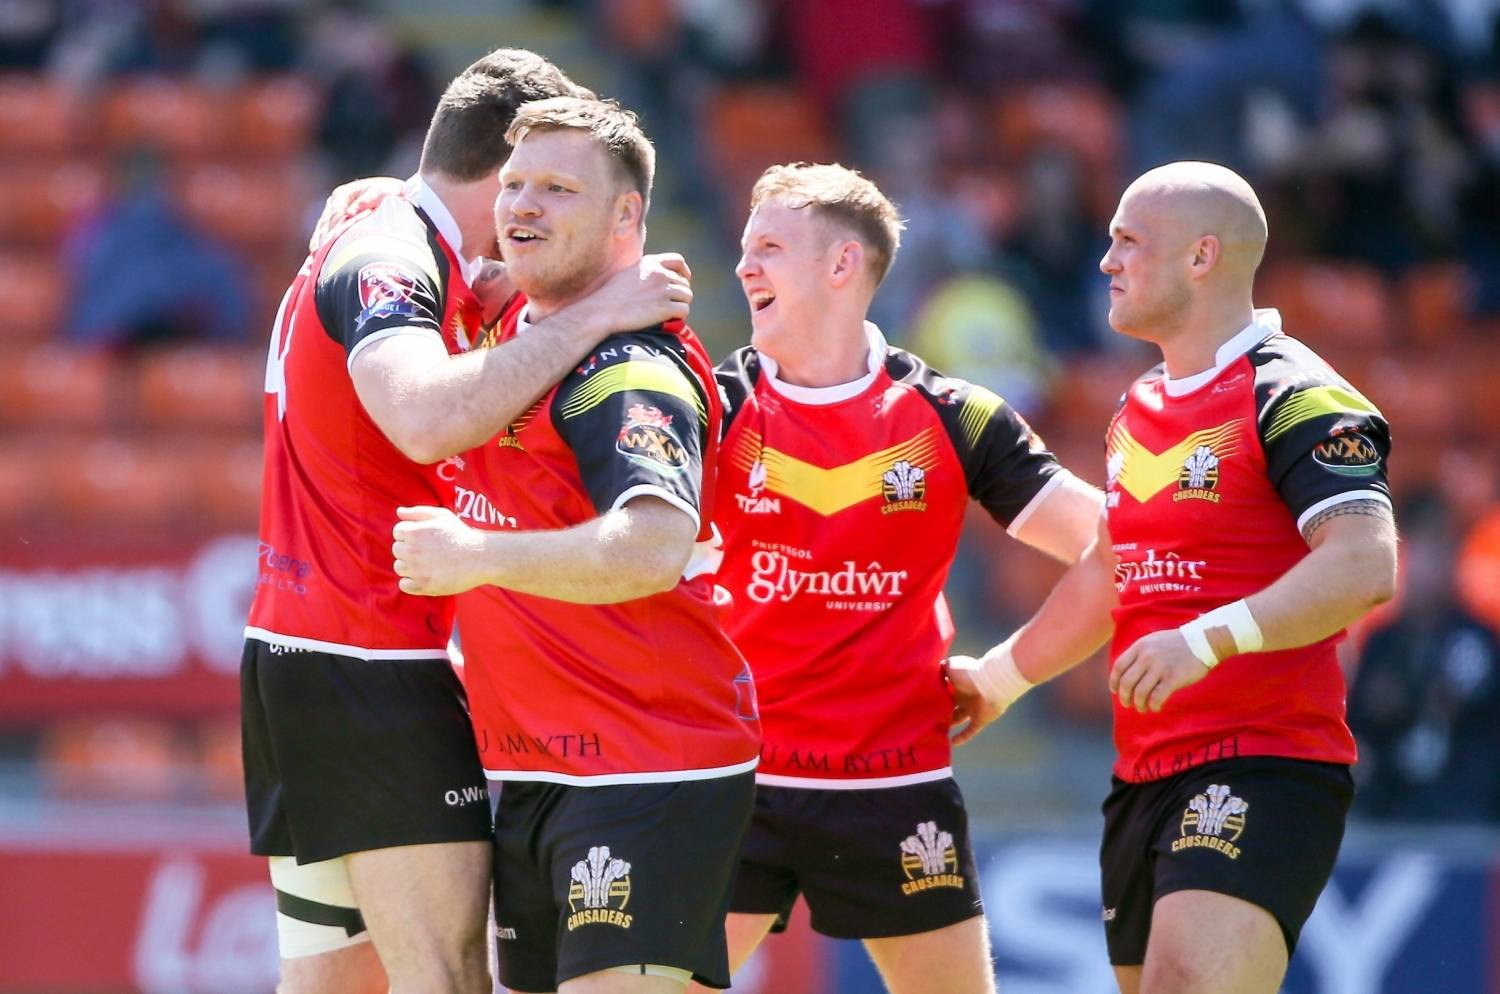 League 1 Shield: round 6 reports